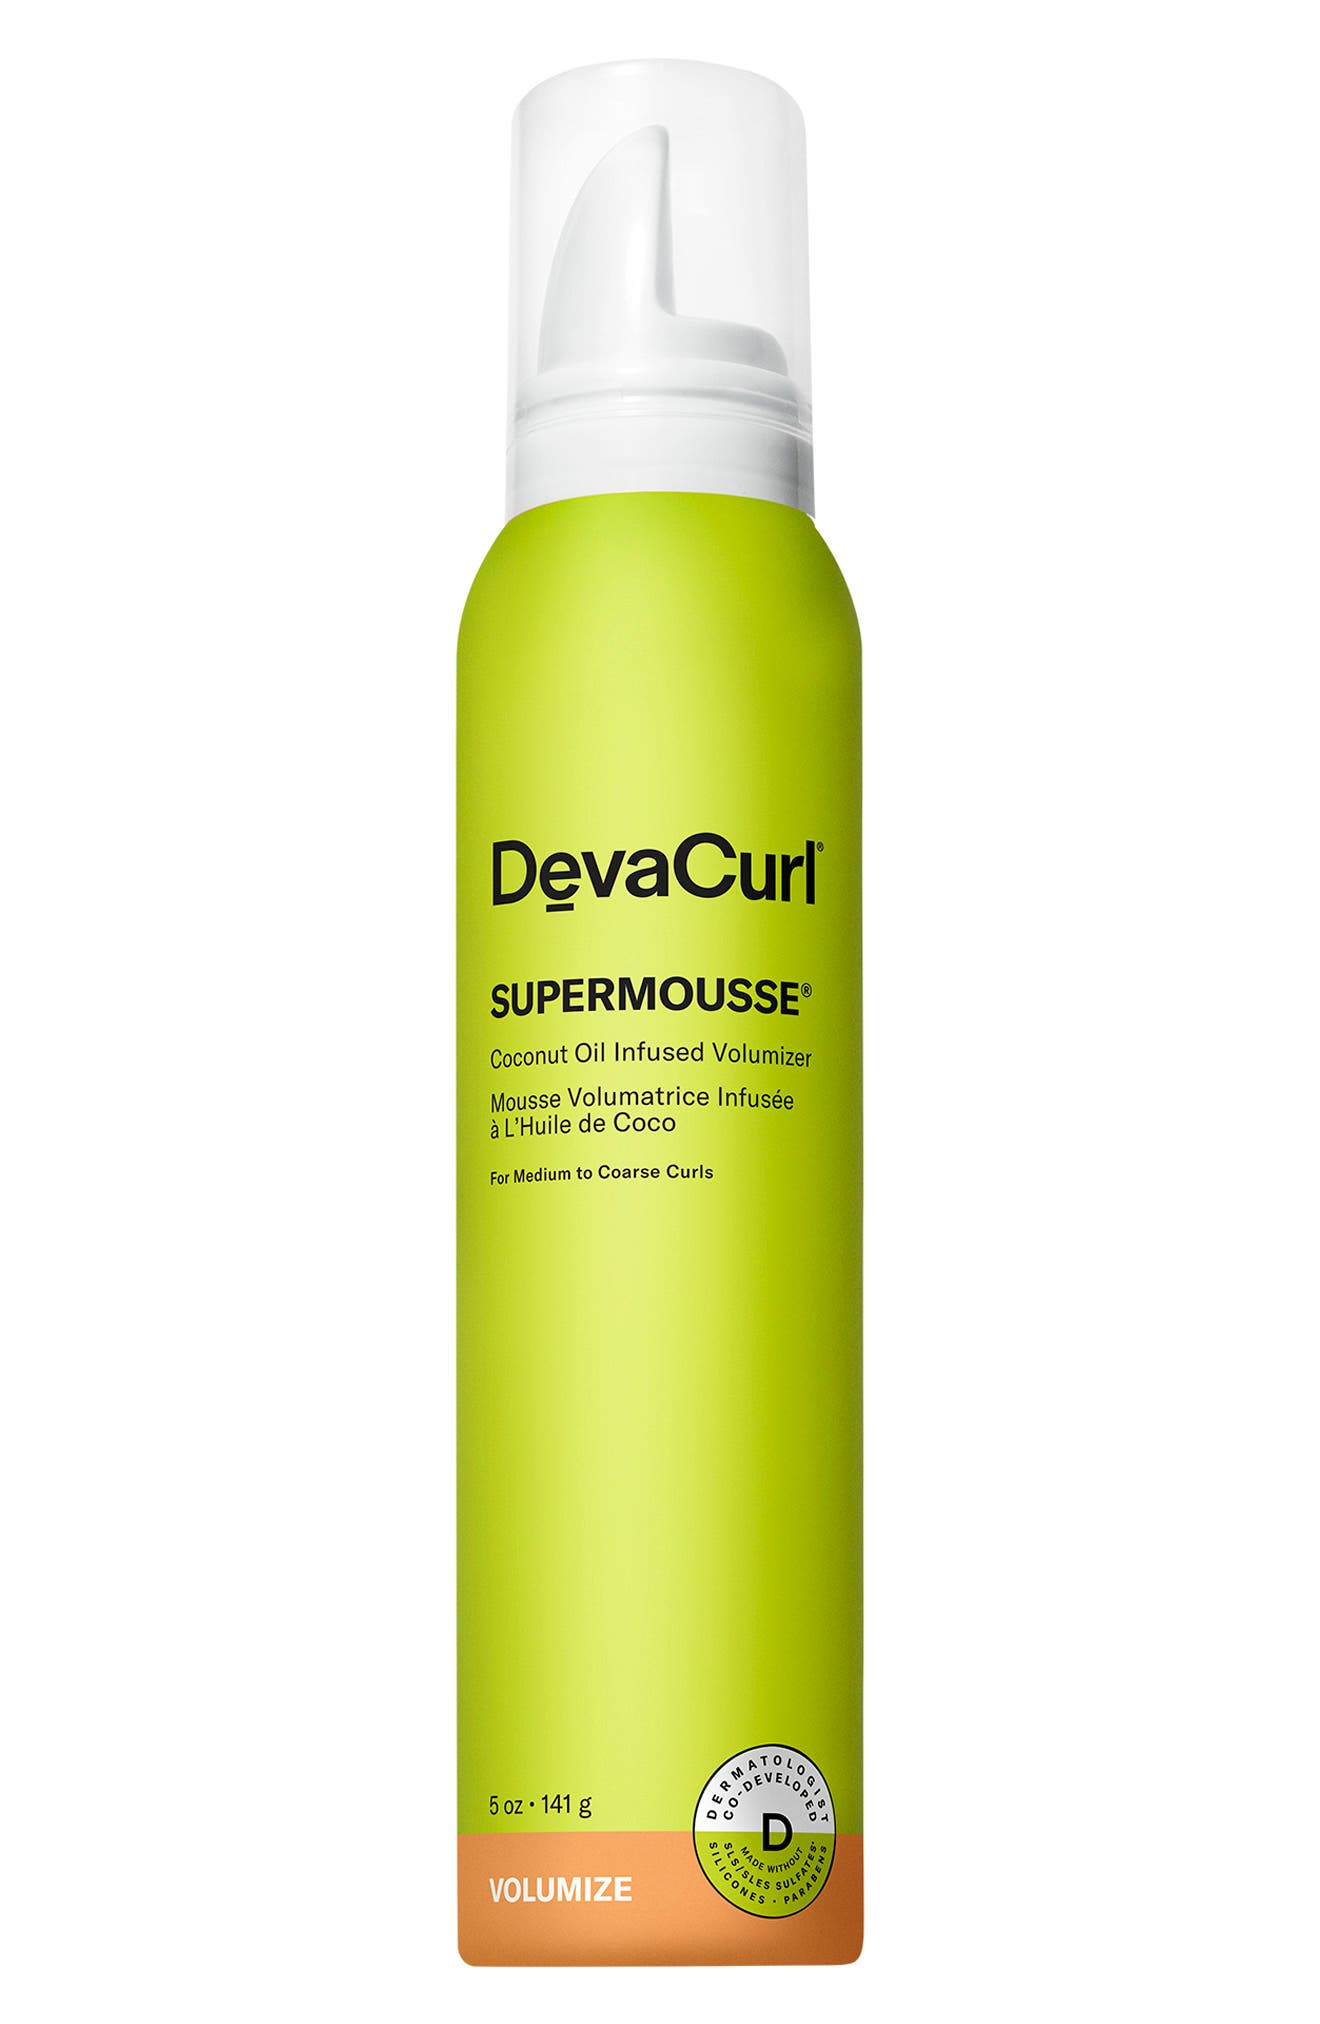 Supermousse Coconut Oil Infused Volumizer